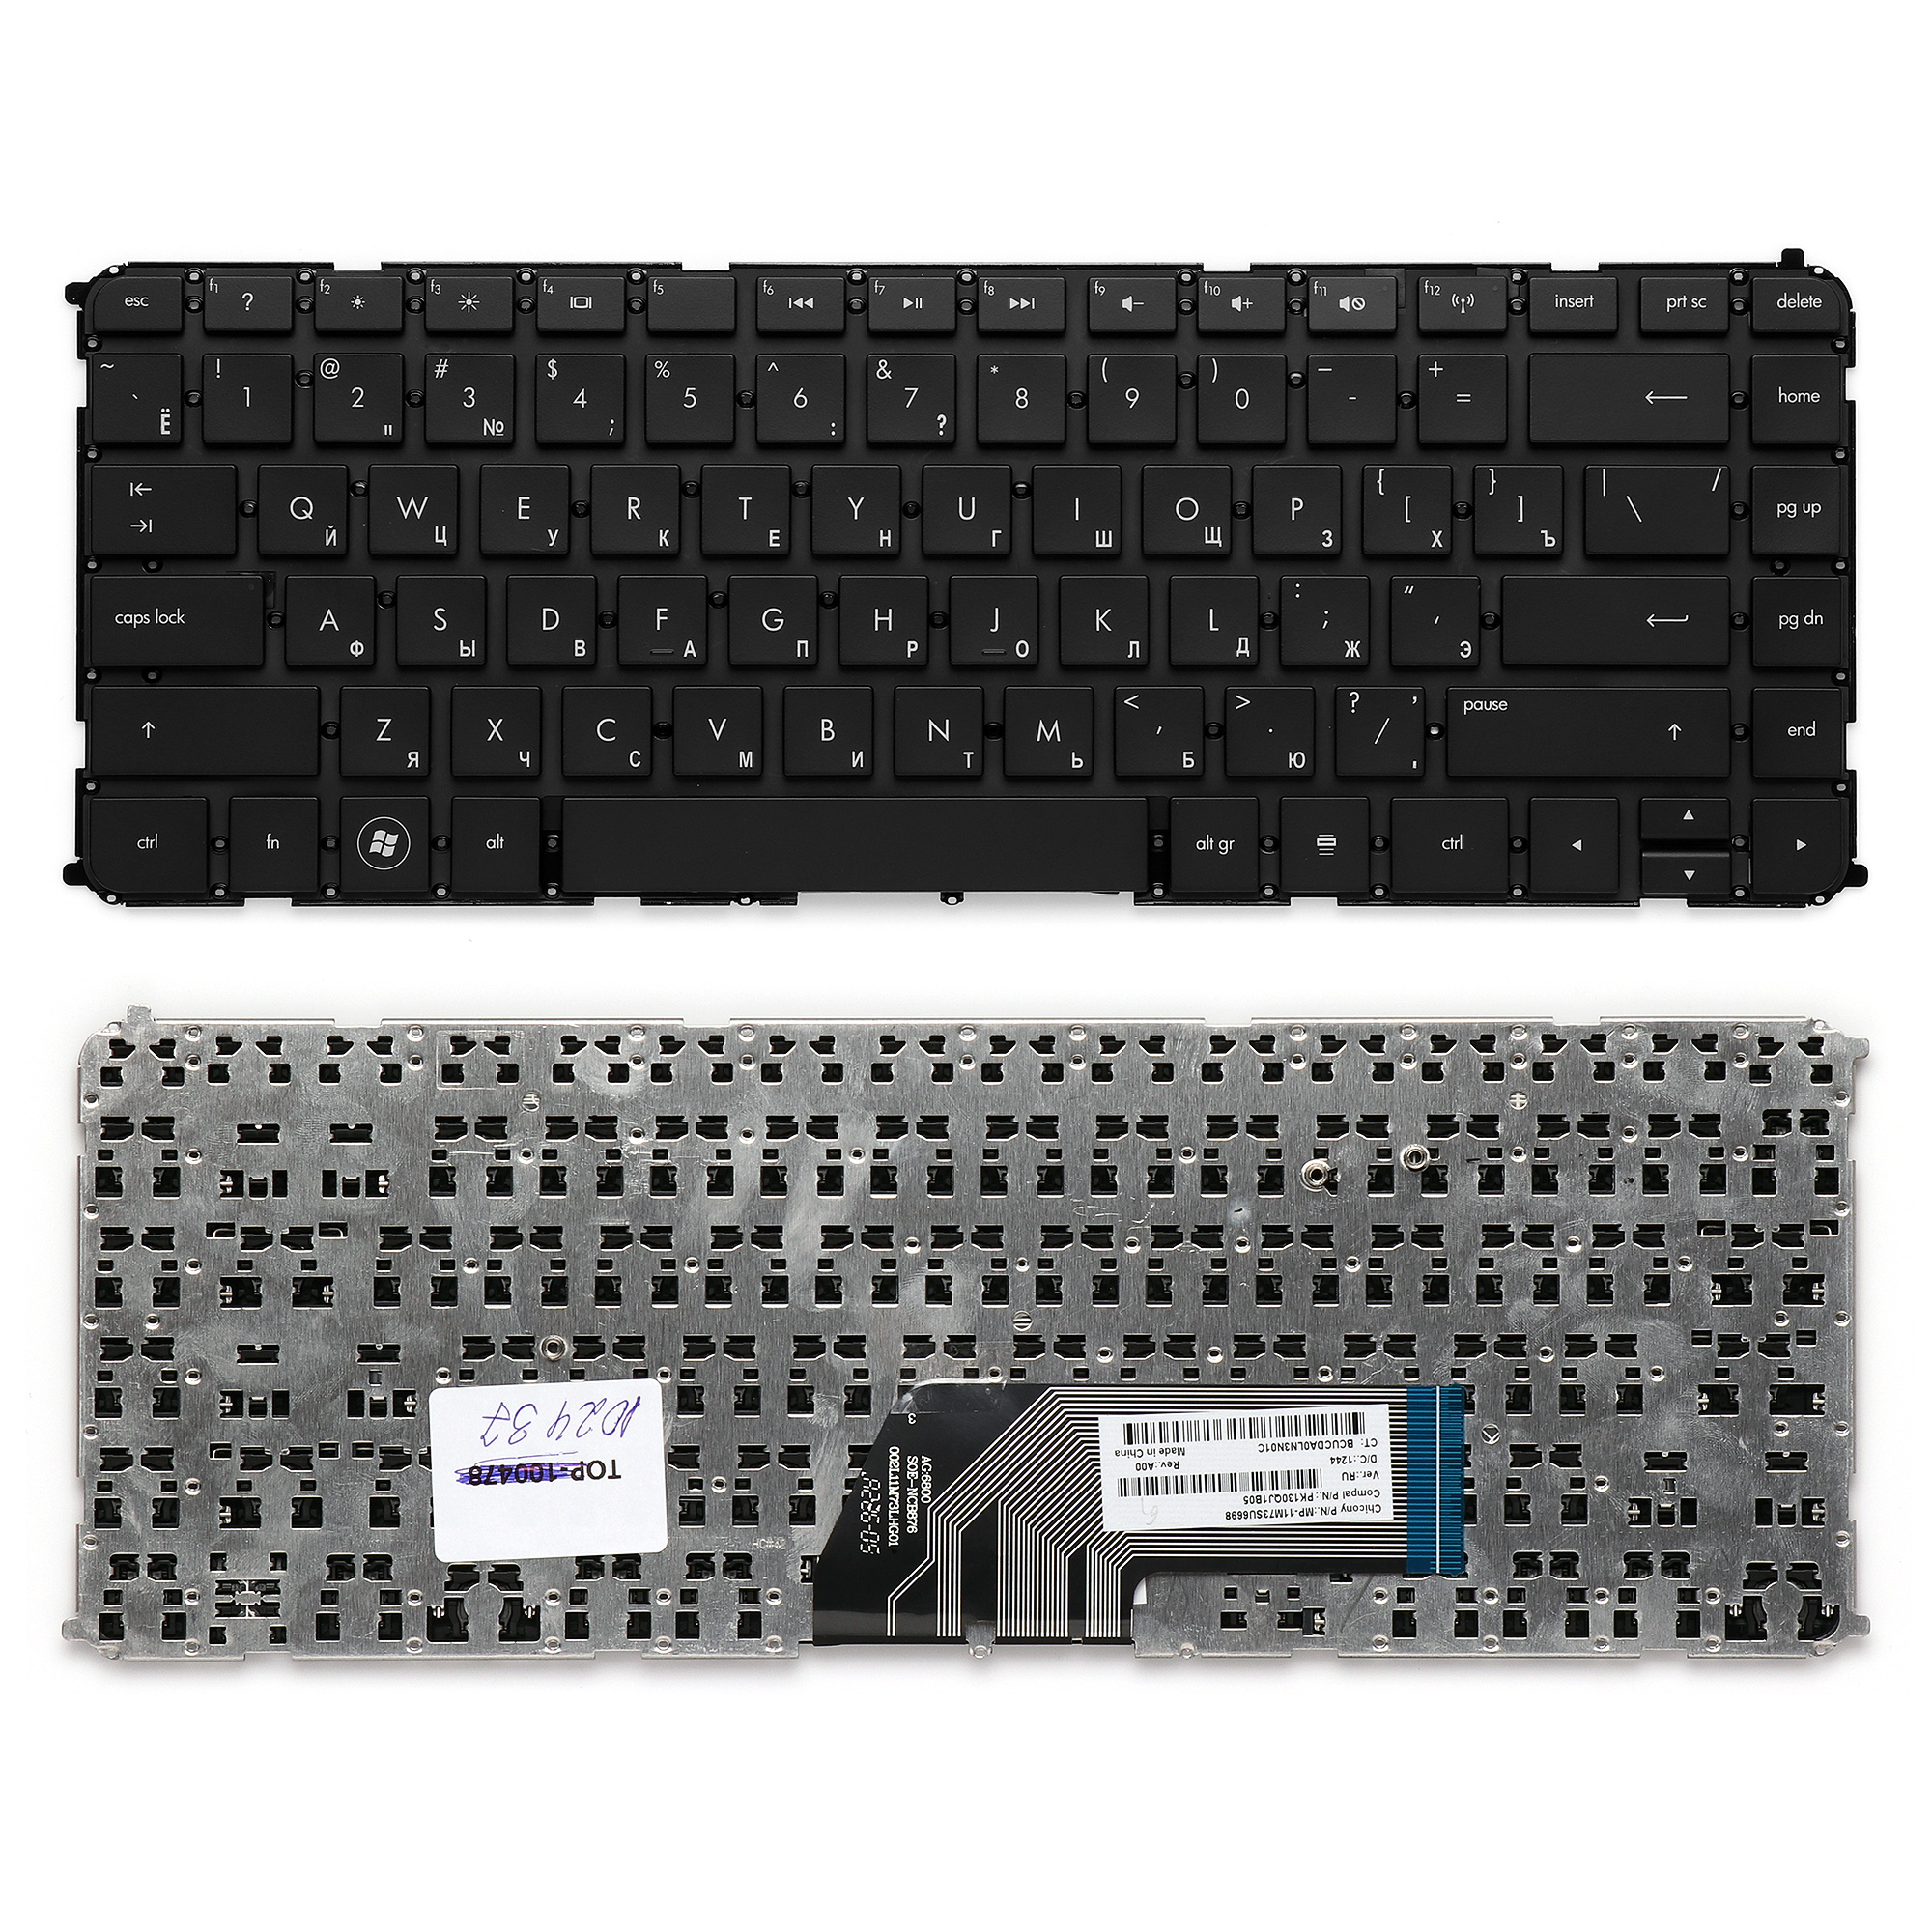 Клавиатура TopOn HP Envy 4-1100, 4-1200, 6-1000 Series. PN: 698679-001, 698679-251., KB-102437, черный клавиатура topon hp envy 4 1100 4 1200 6 1000 series pn 698679 001 698679 251 kb 102437 черный